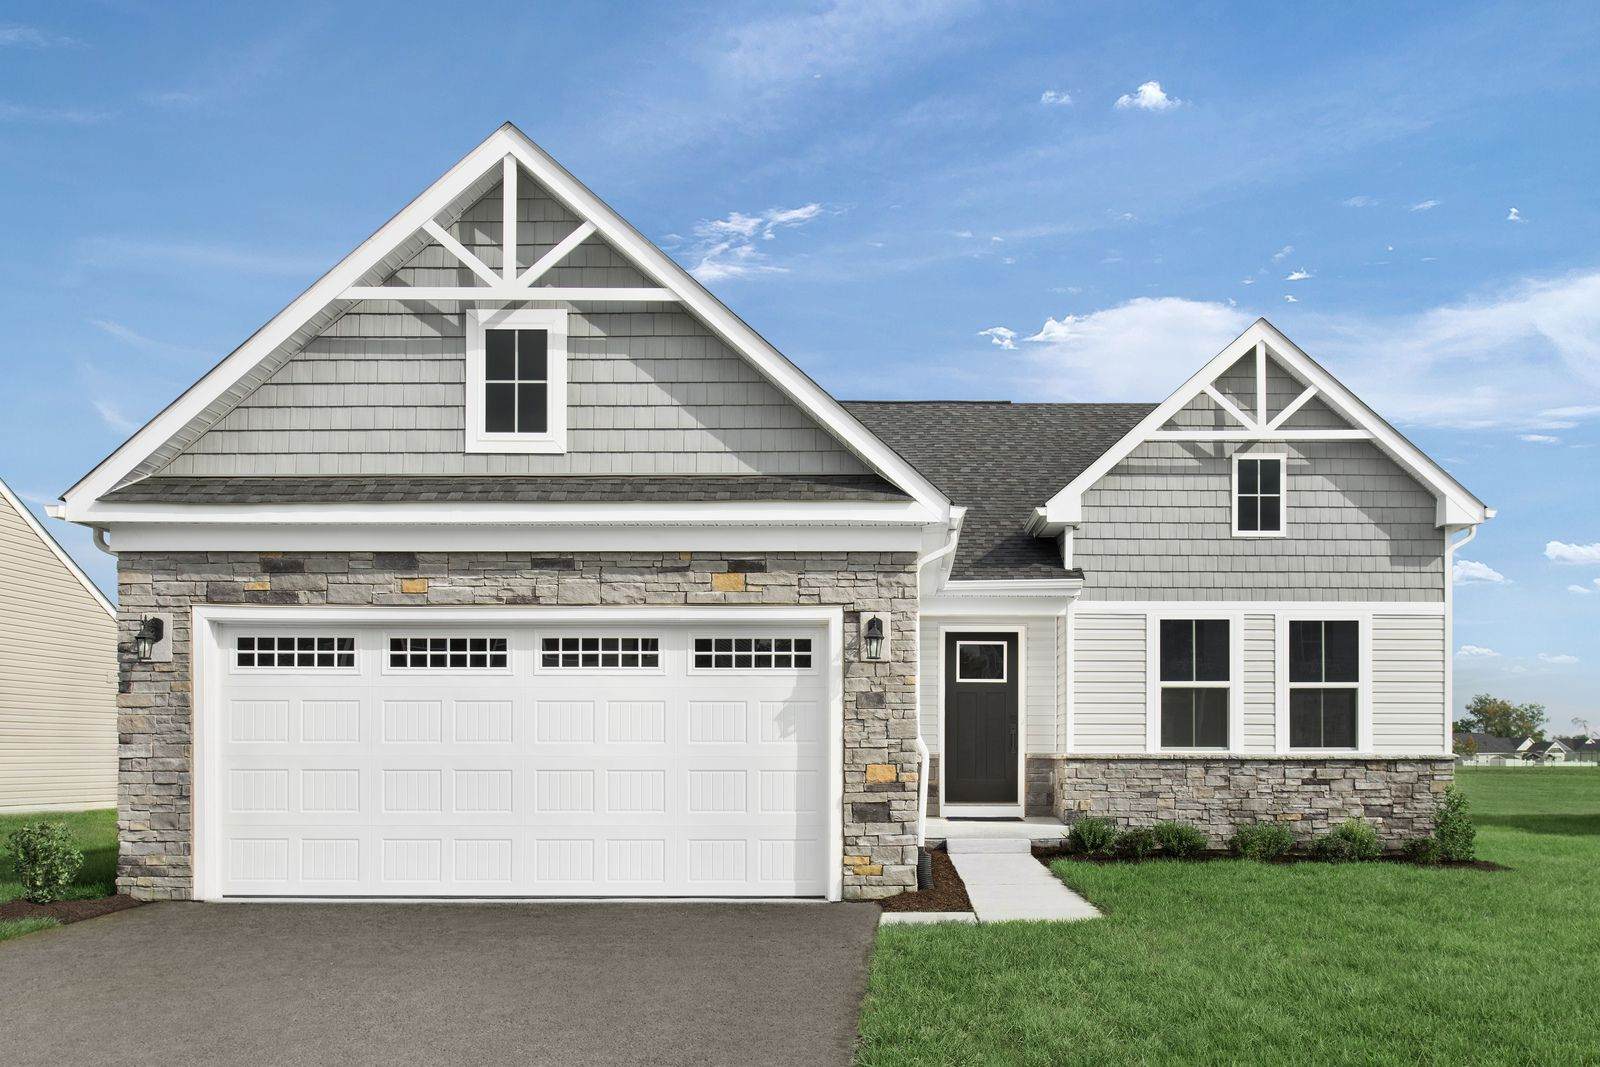 Welcome Home to Maplecrest:Monroeville's lowest priced new ranch home community with lawn maintenance. Conveniently located to I-376, Rt. 22, Rt. 48, and I-76.Schedule your visit to learn more.